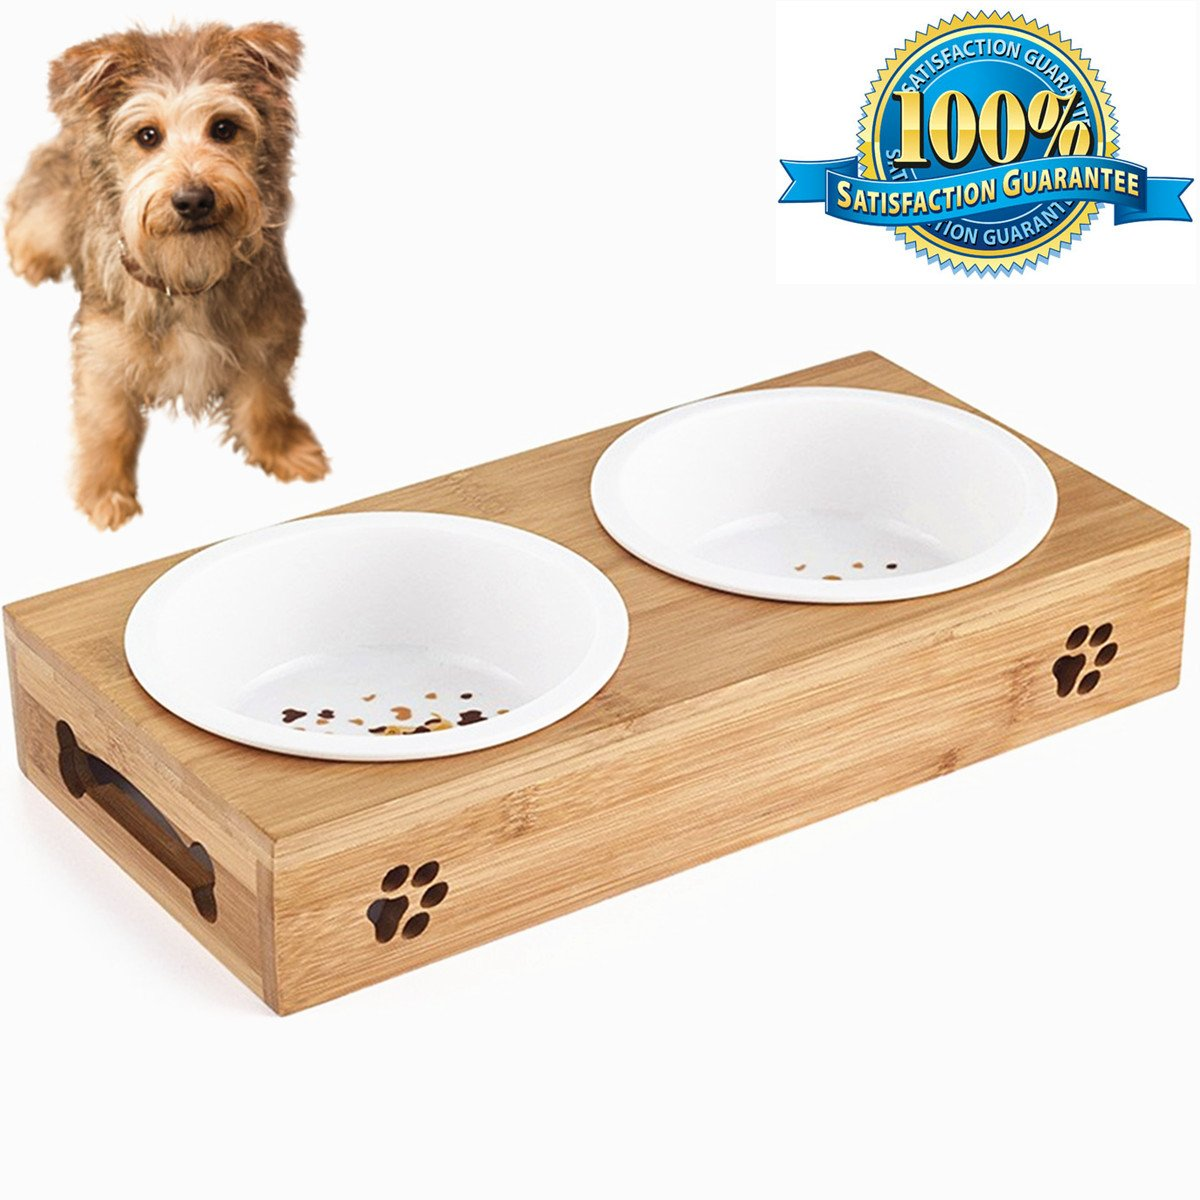 steel raised pet elevated feeder small bowls itm for cats dogs and with stainless ceramic lepet cat